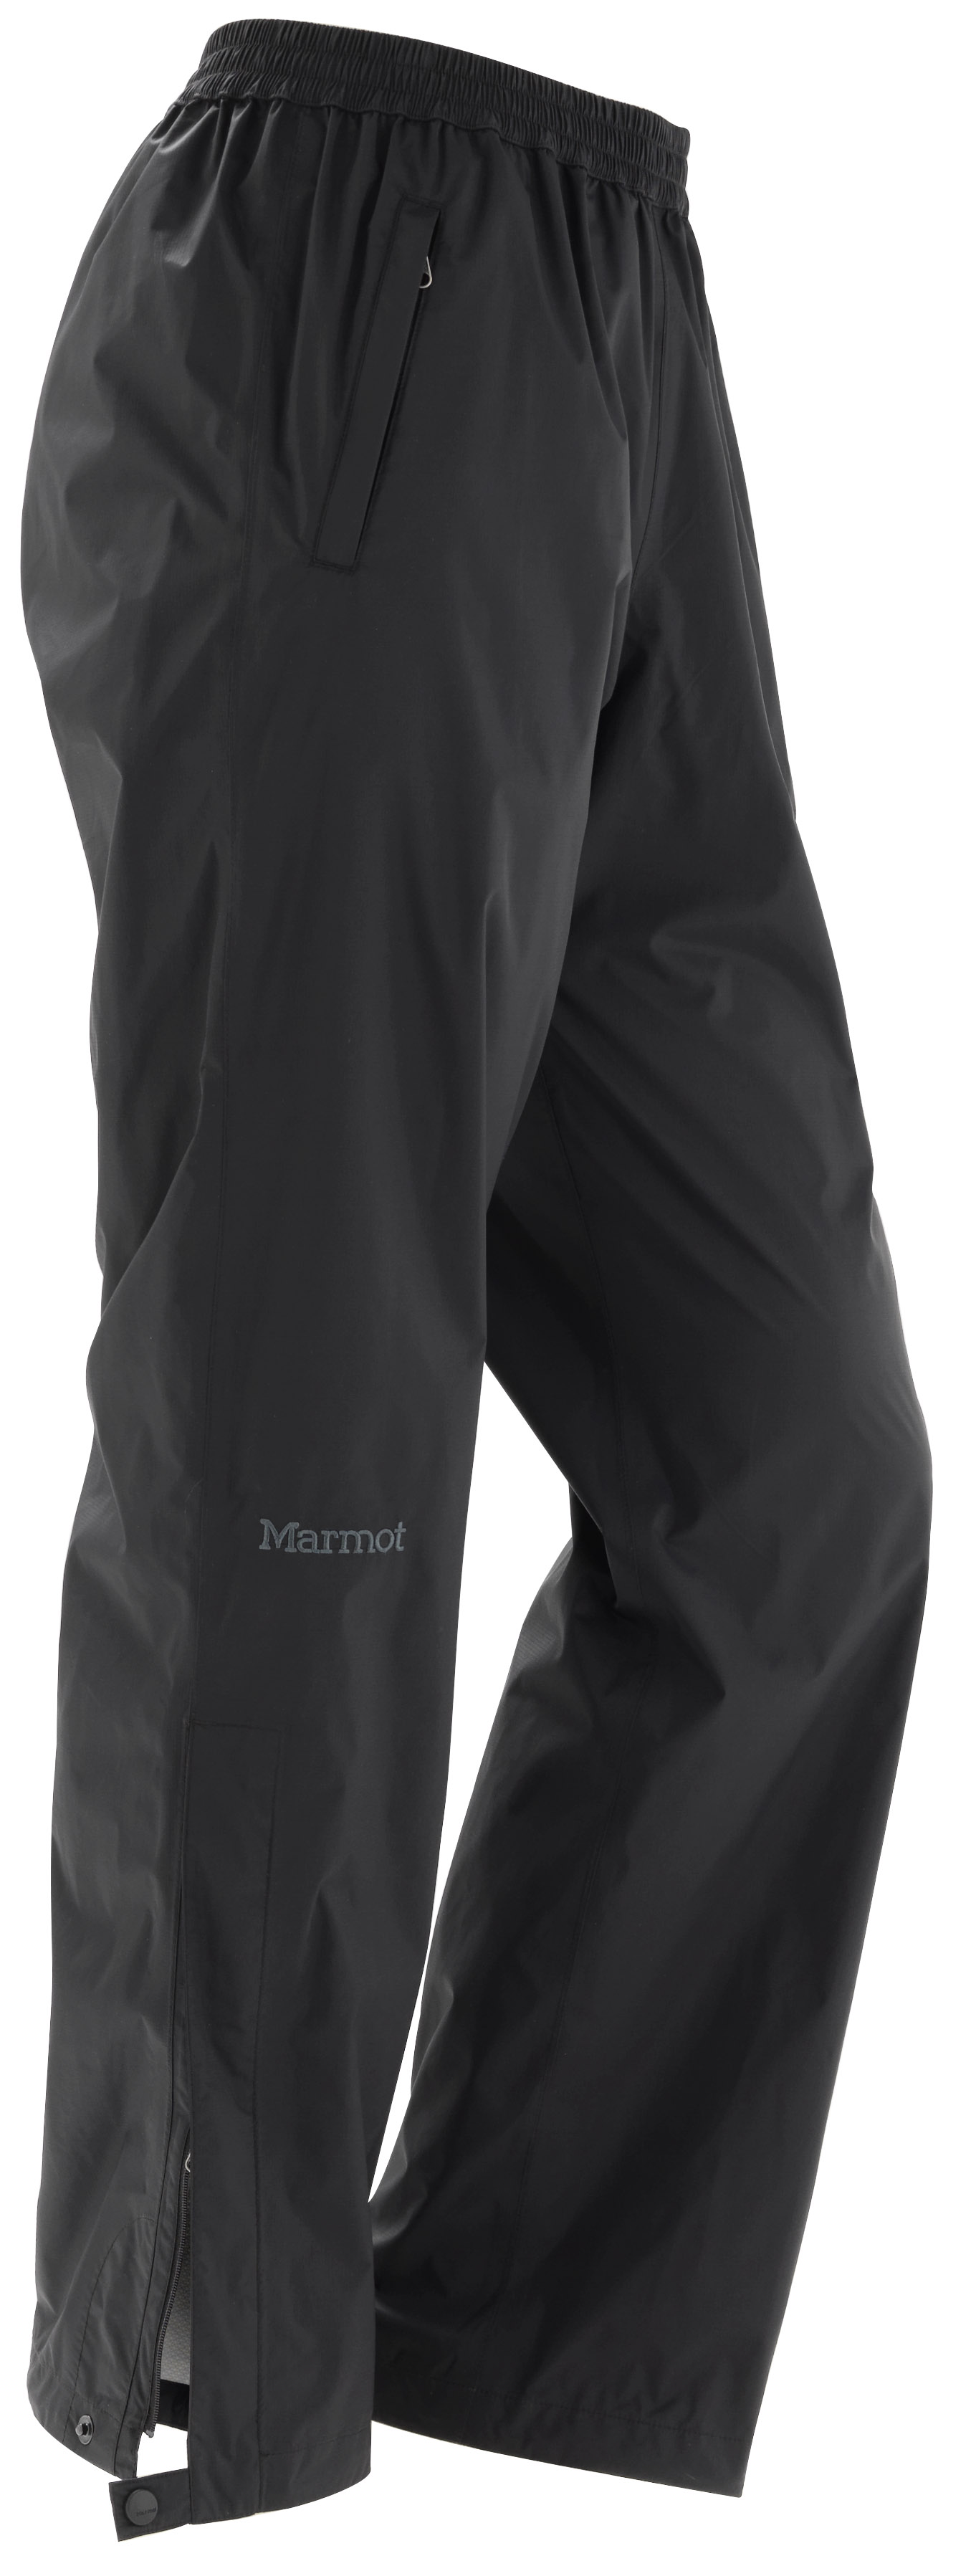 Camp and Hike Marmot PreCip Pants Black - $57.95